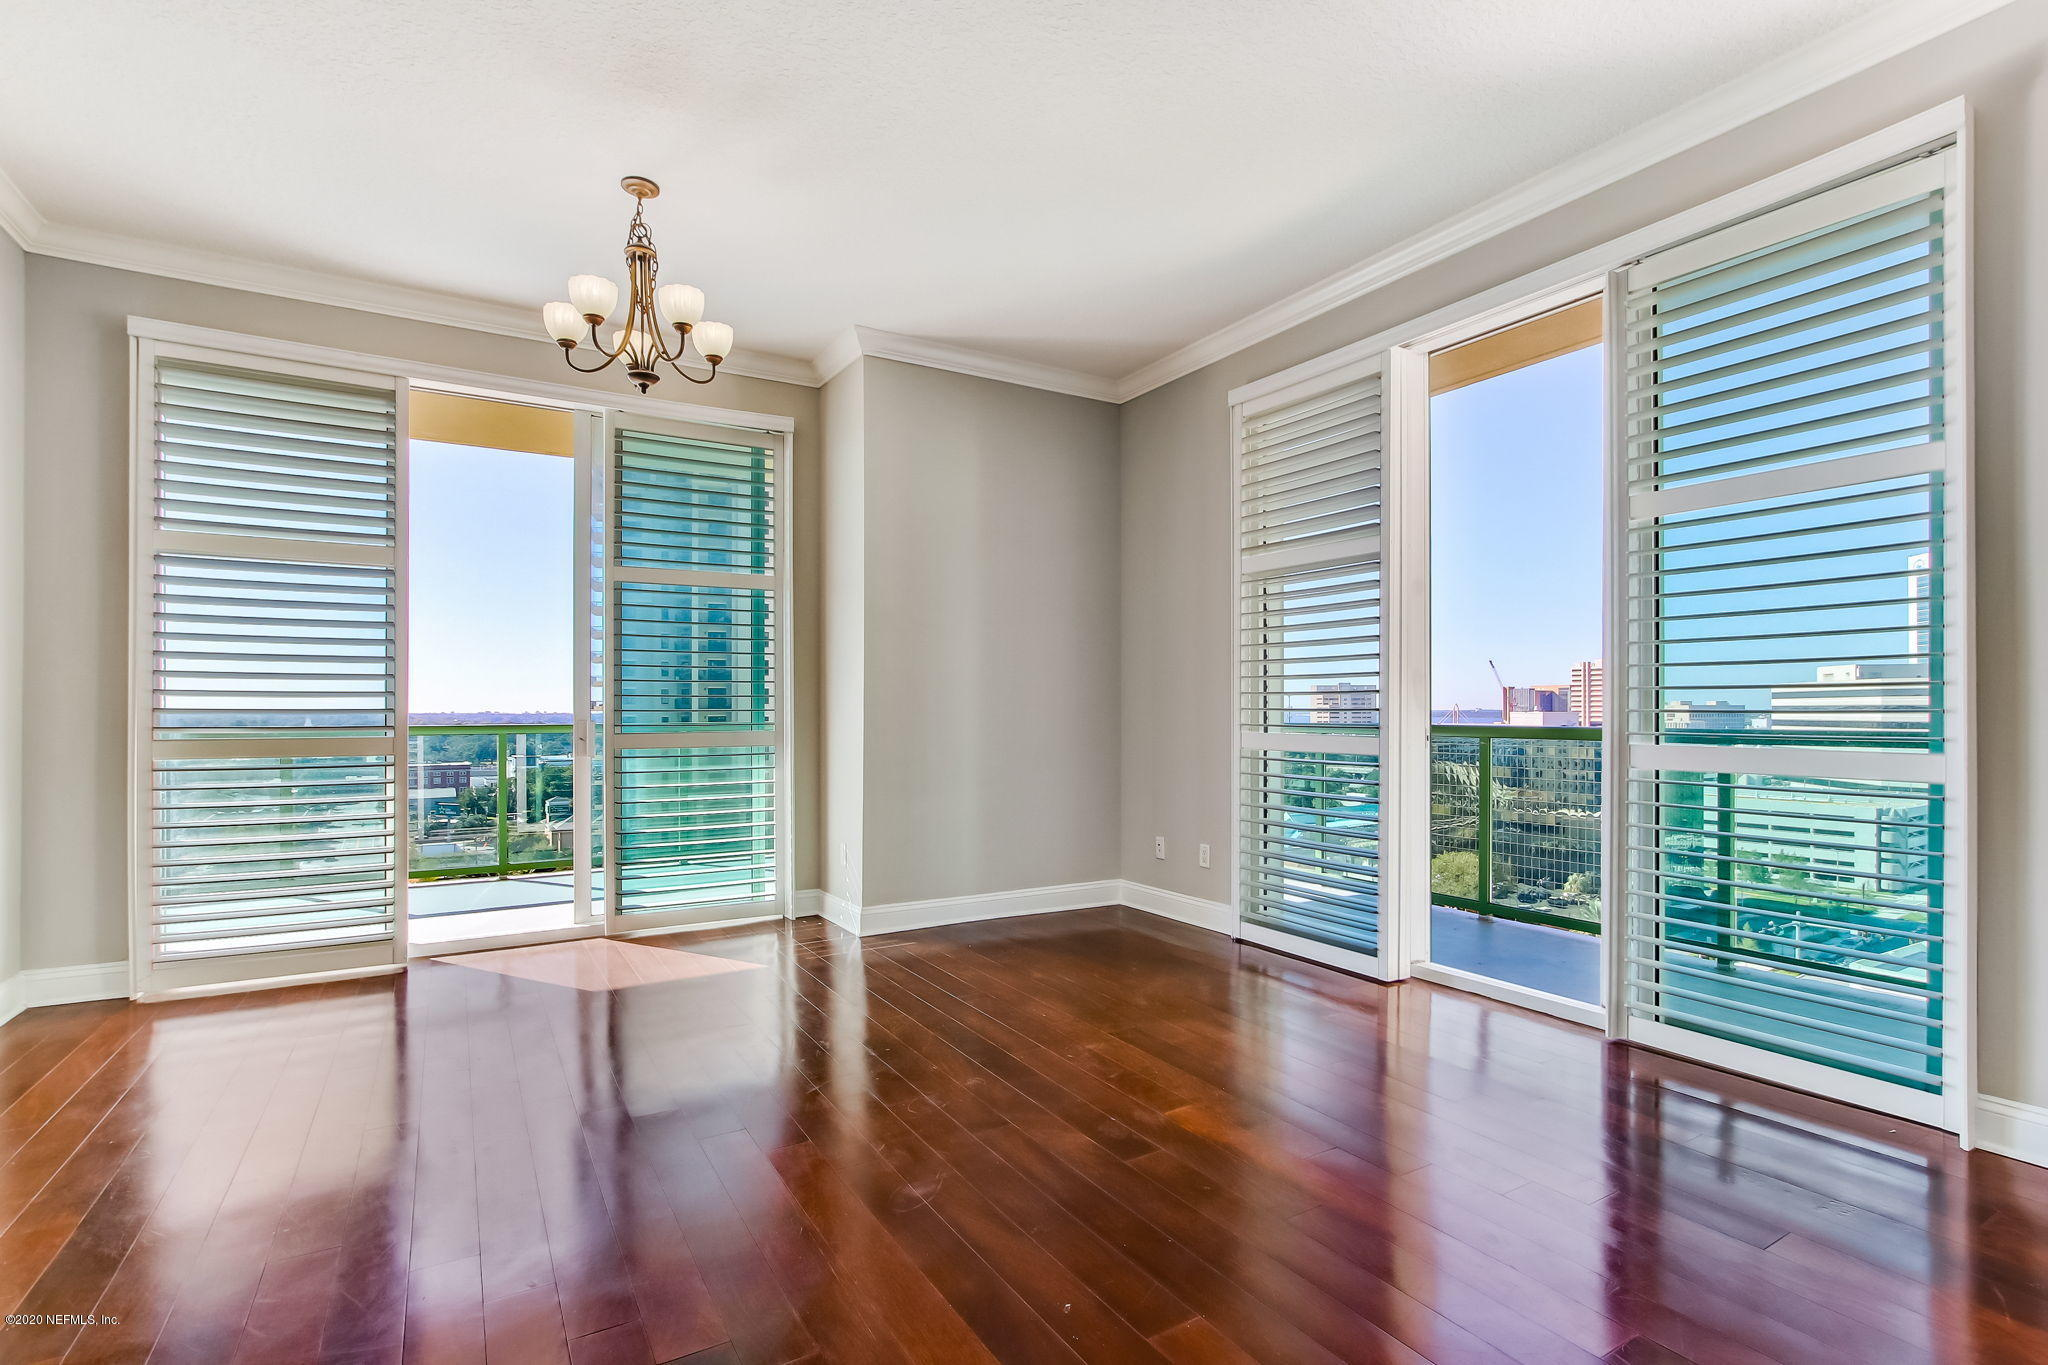 1431 RIVERPLACE, JACKSONVILLE, FLORIDA 32207, 2 Bedrooms Bedrooms, ,2 BathroomsBathrooms,Residential,For sale,RIVERPLACE,1083091